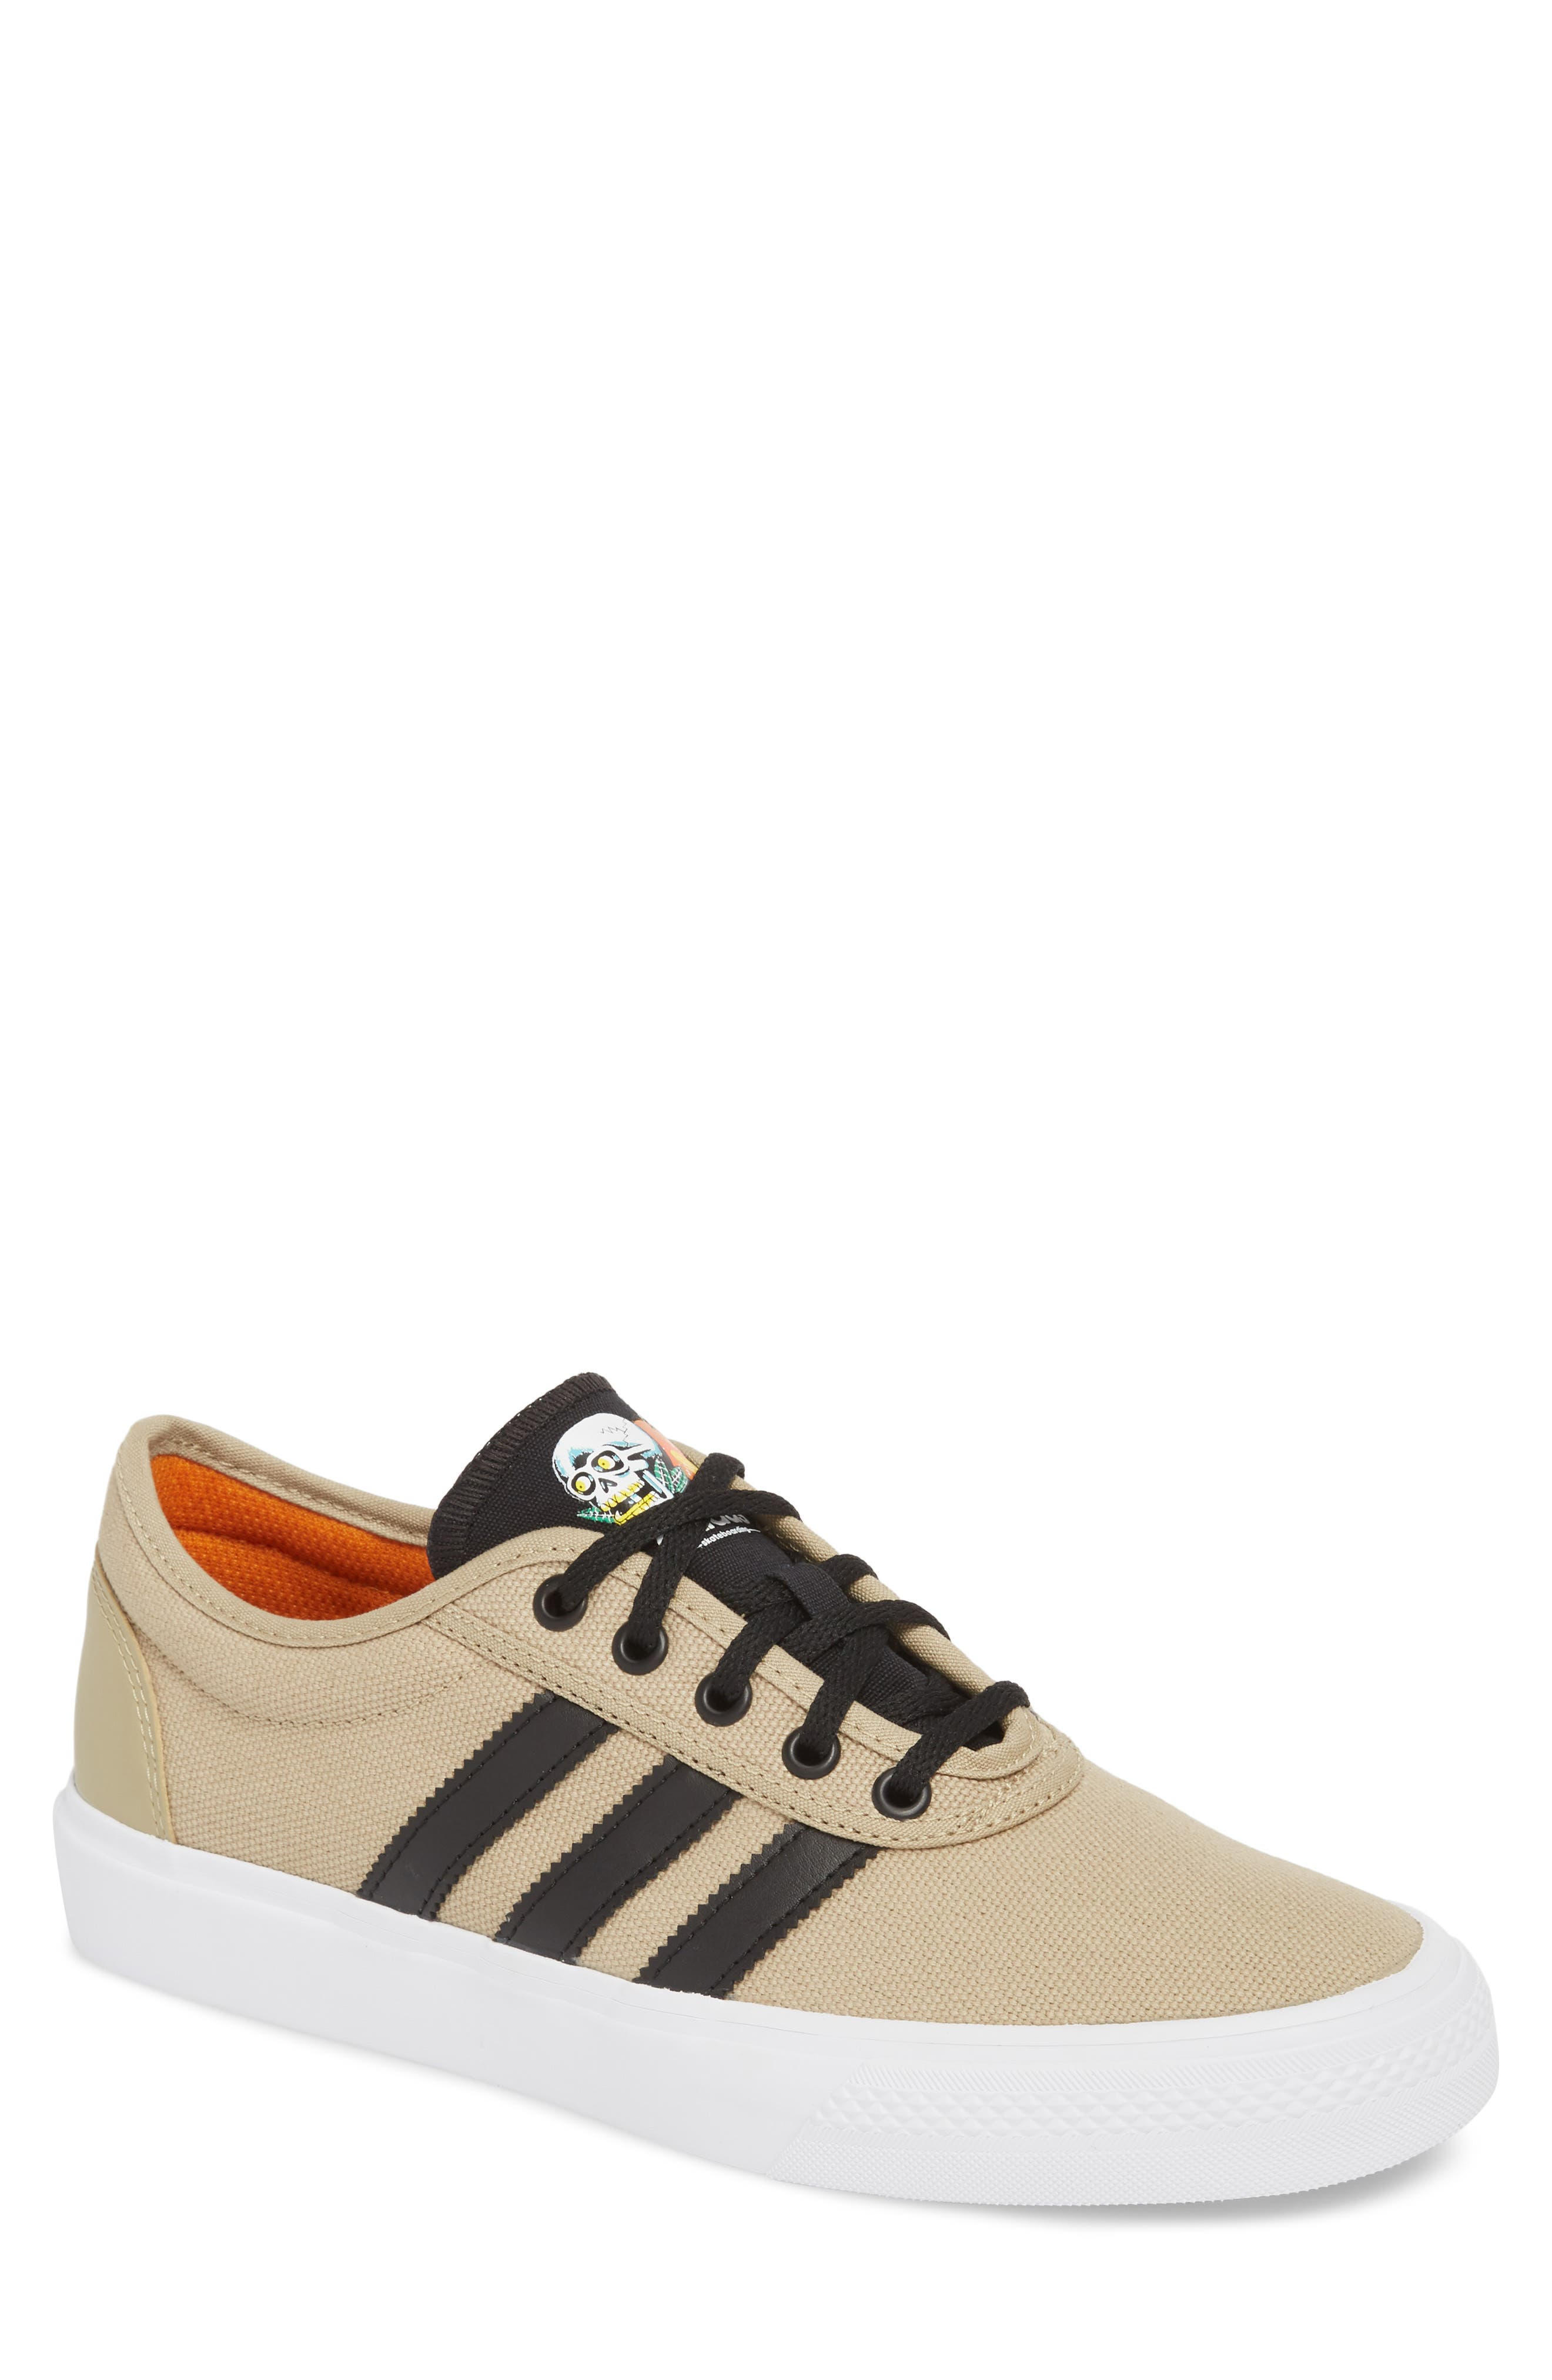 Adiease Premiere Skateboarding Sneaker,                         Main,                         color, Gold/ Core Black/ White